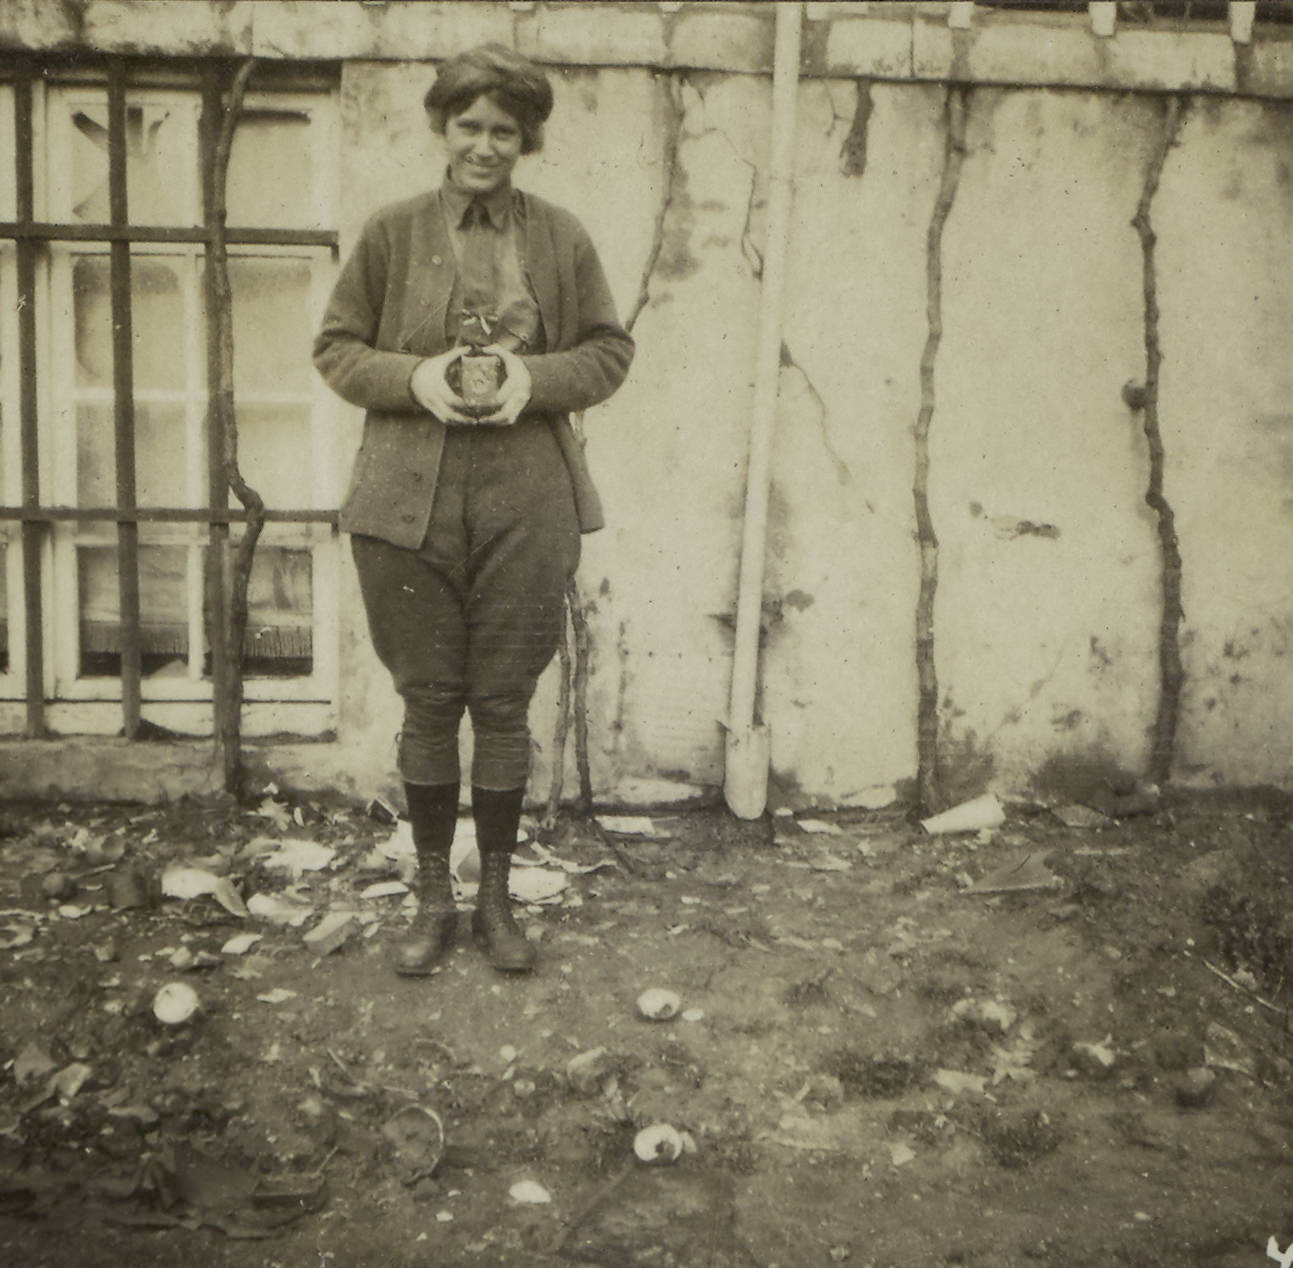 Gleason, posing with a snapshot camera, met Chisholm while working for Dr Munro's Flying Ambulance Corps, undated.